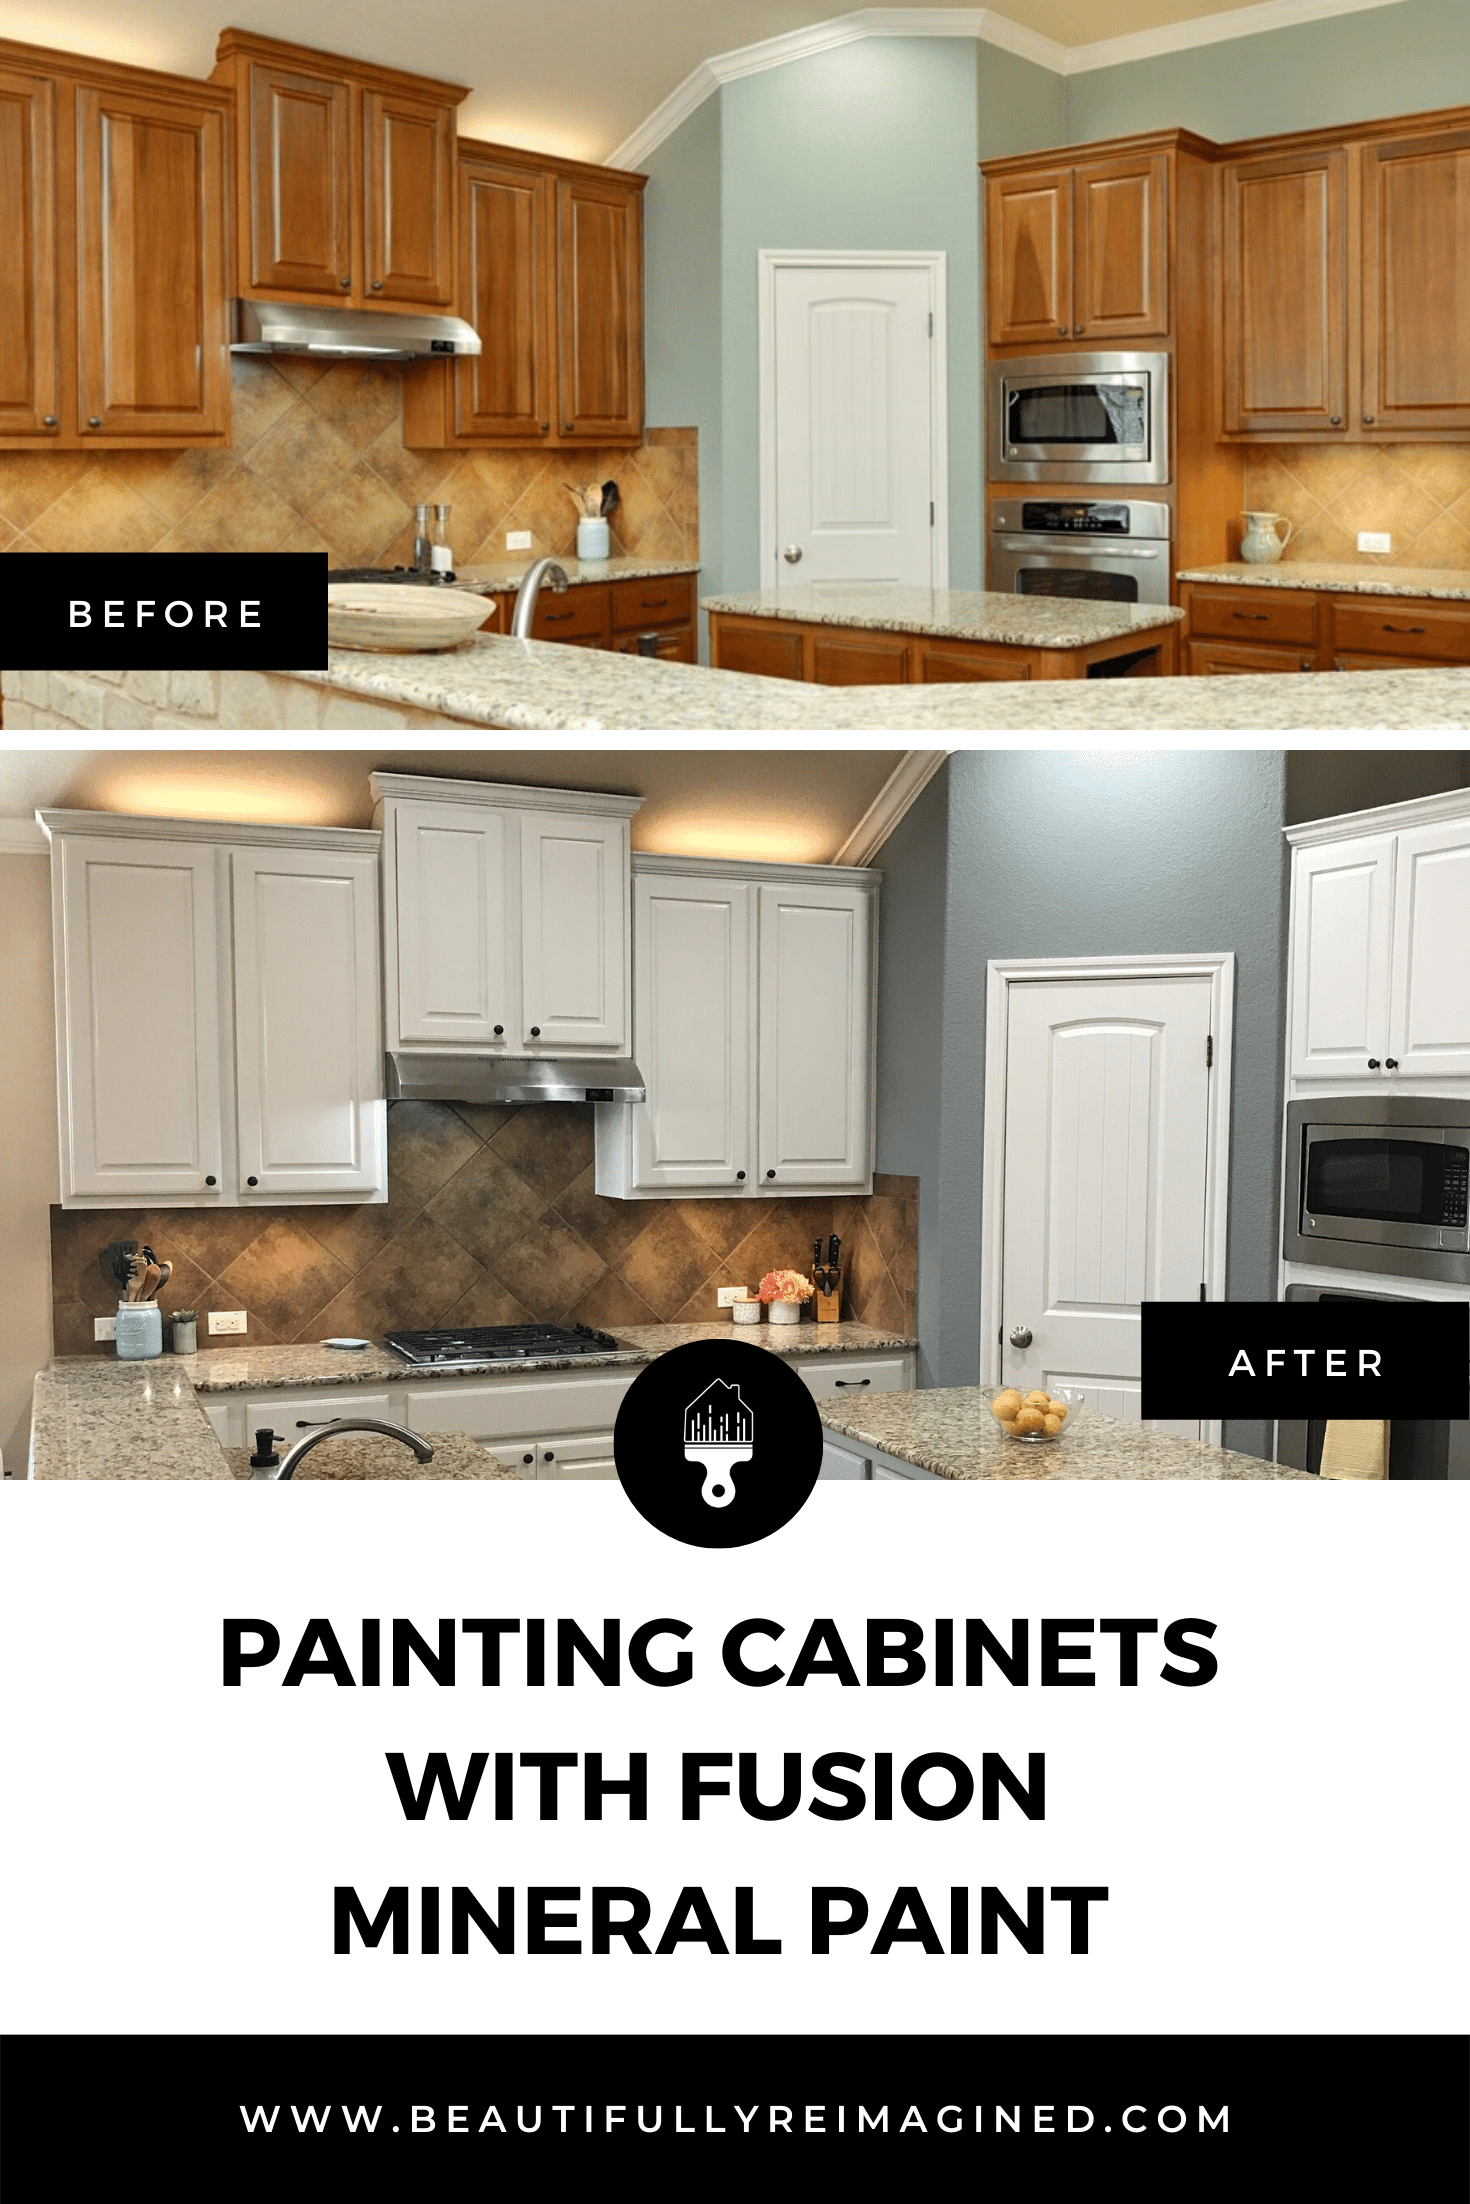 Painting Cabinets With Fusion Mineral Paint Beautifully Reimagined